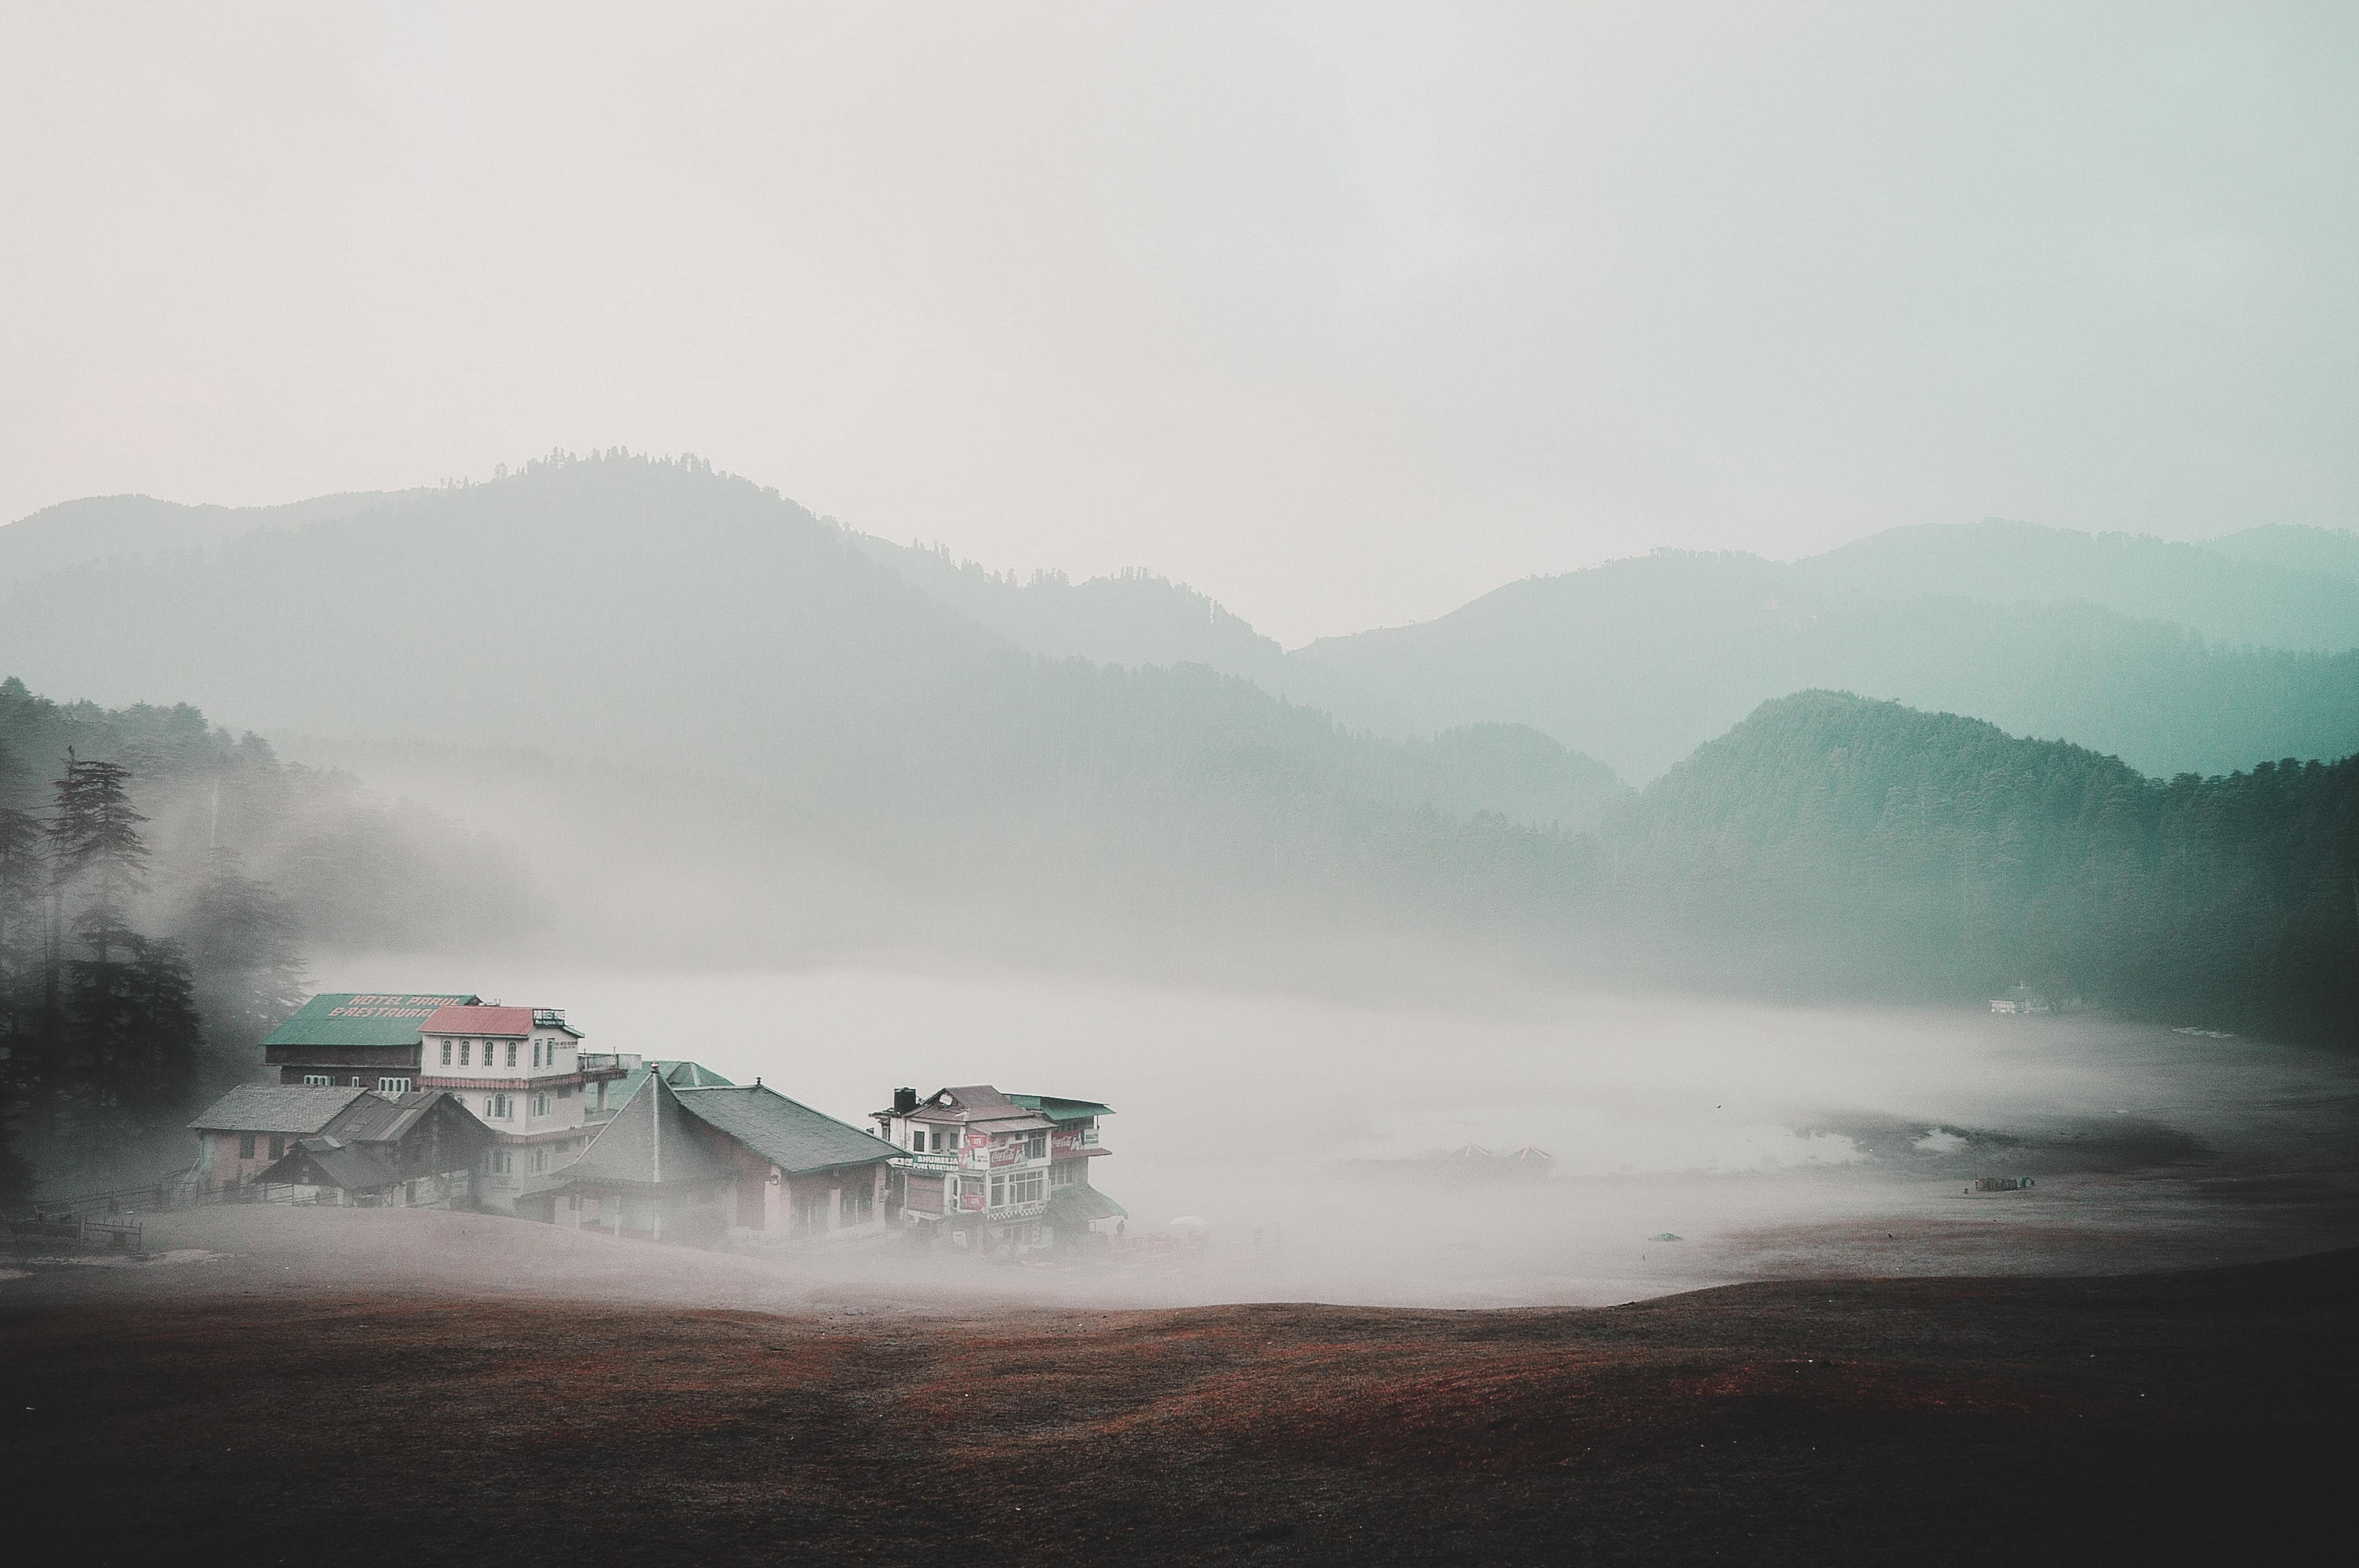 houses near mountains at daytime